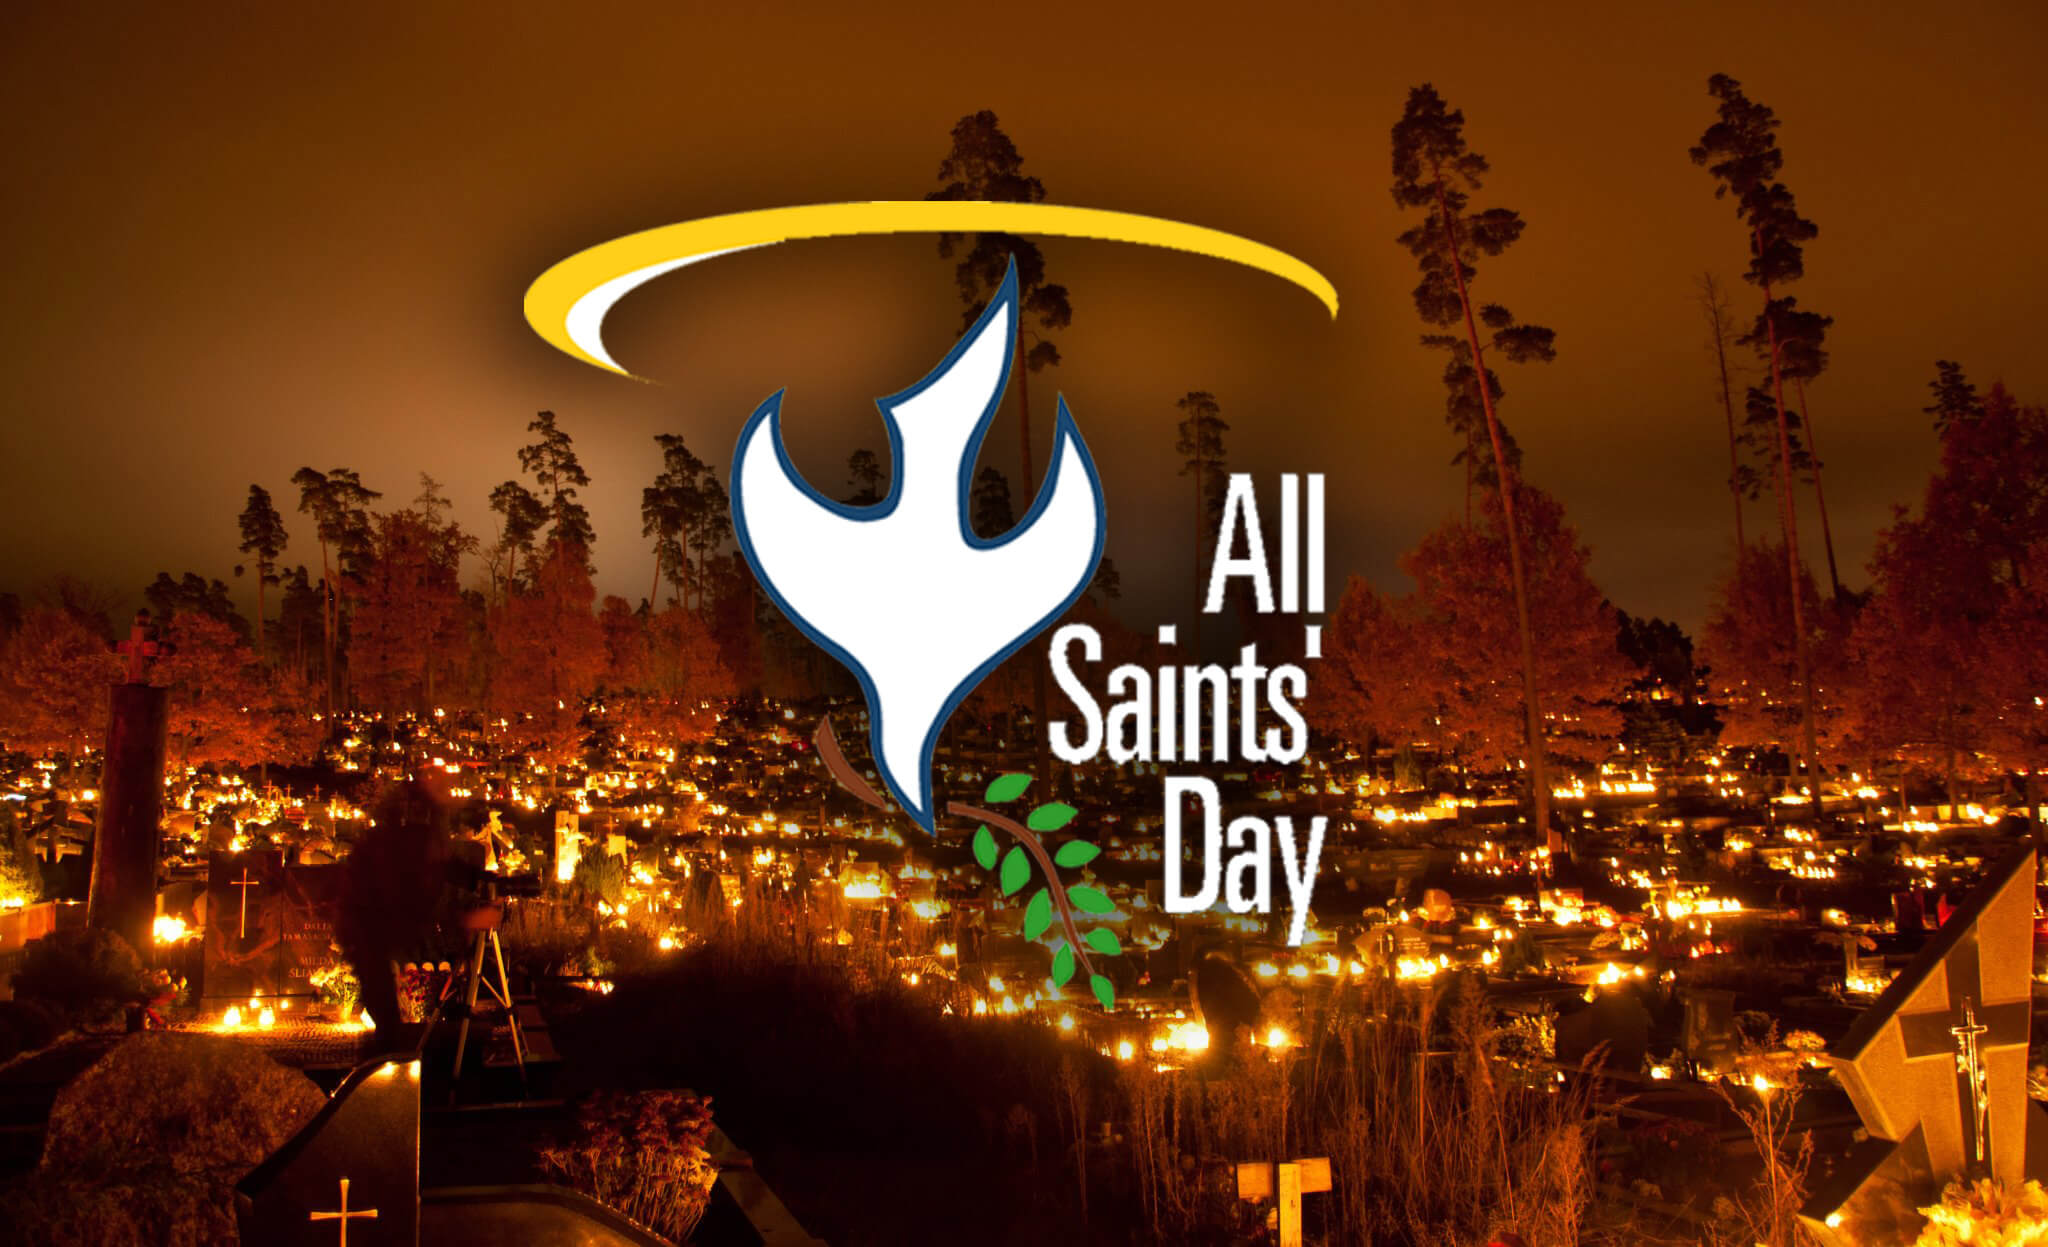 All saints day wallpaper